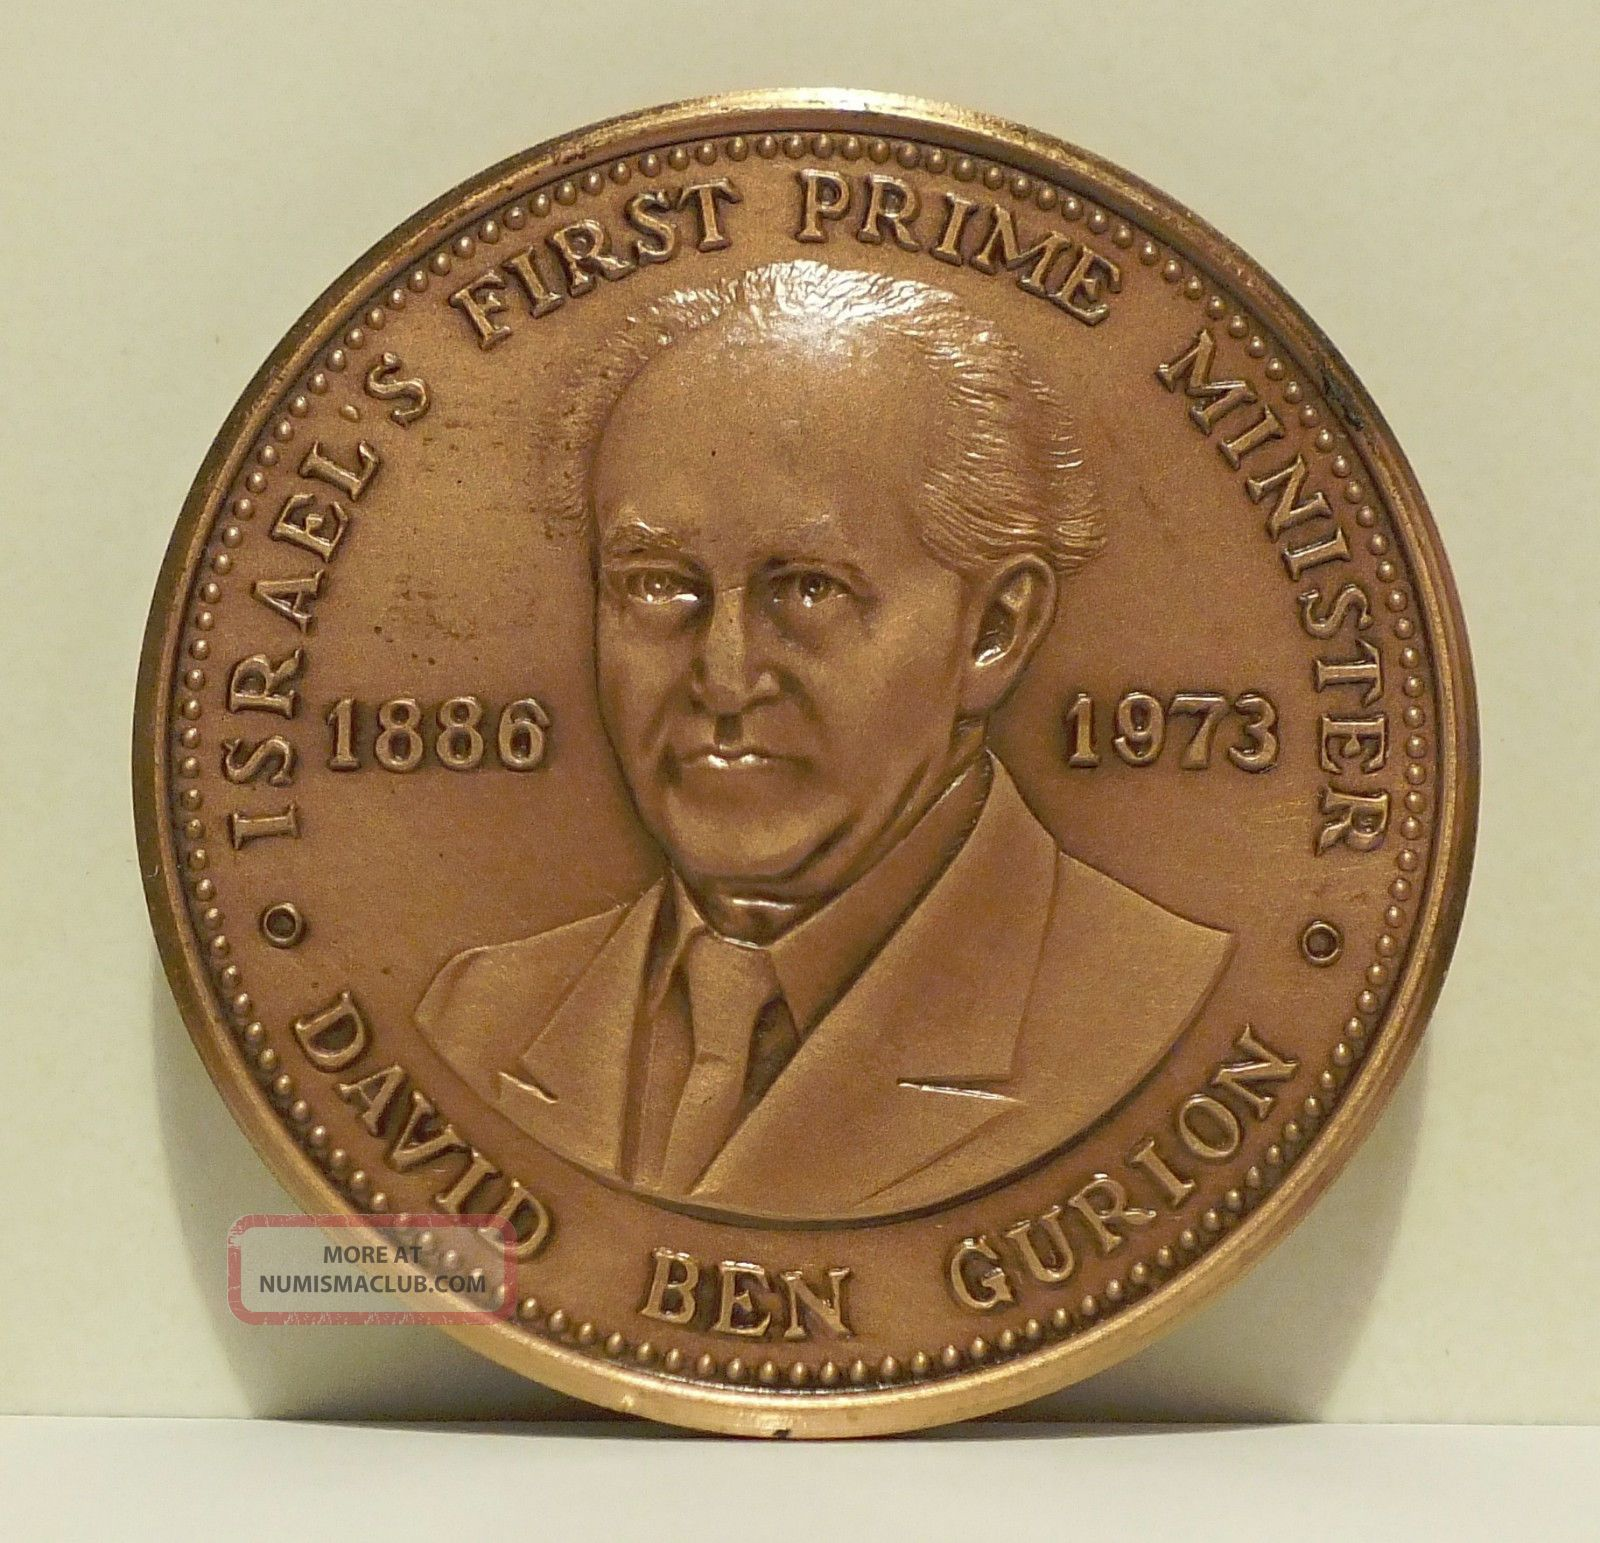 1973 David Ben Gurion Bronze Medal Made In Canada 1.  5 Inches Wide - Good Cond. Exonumia photo